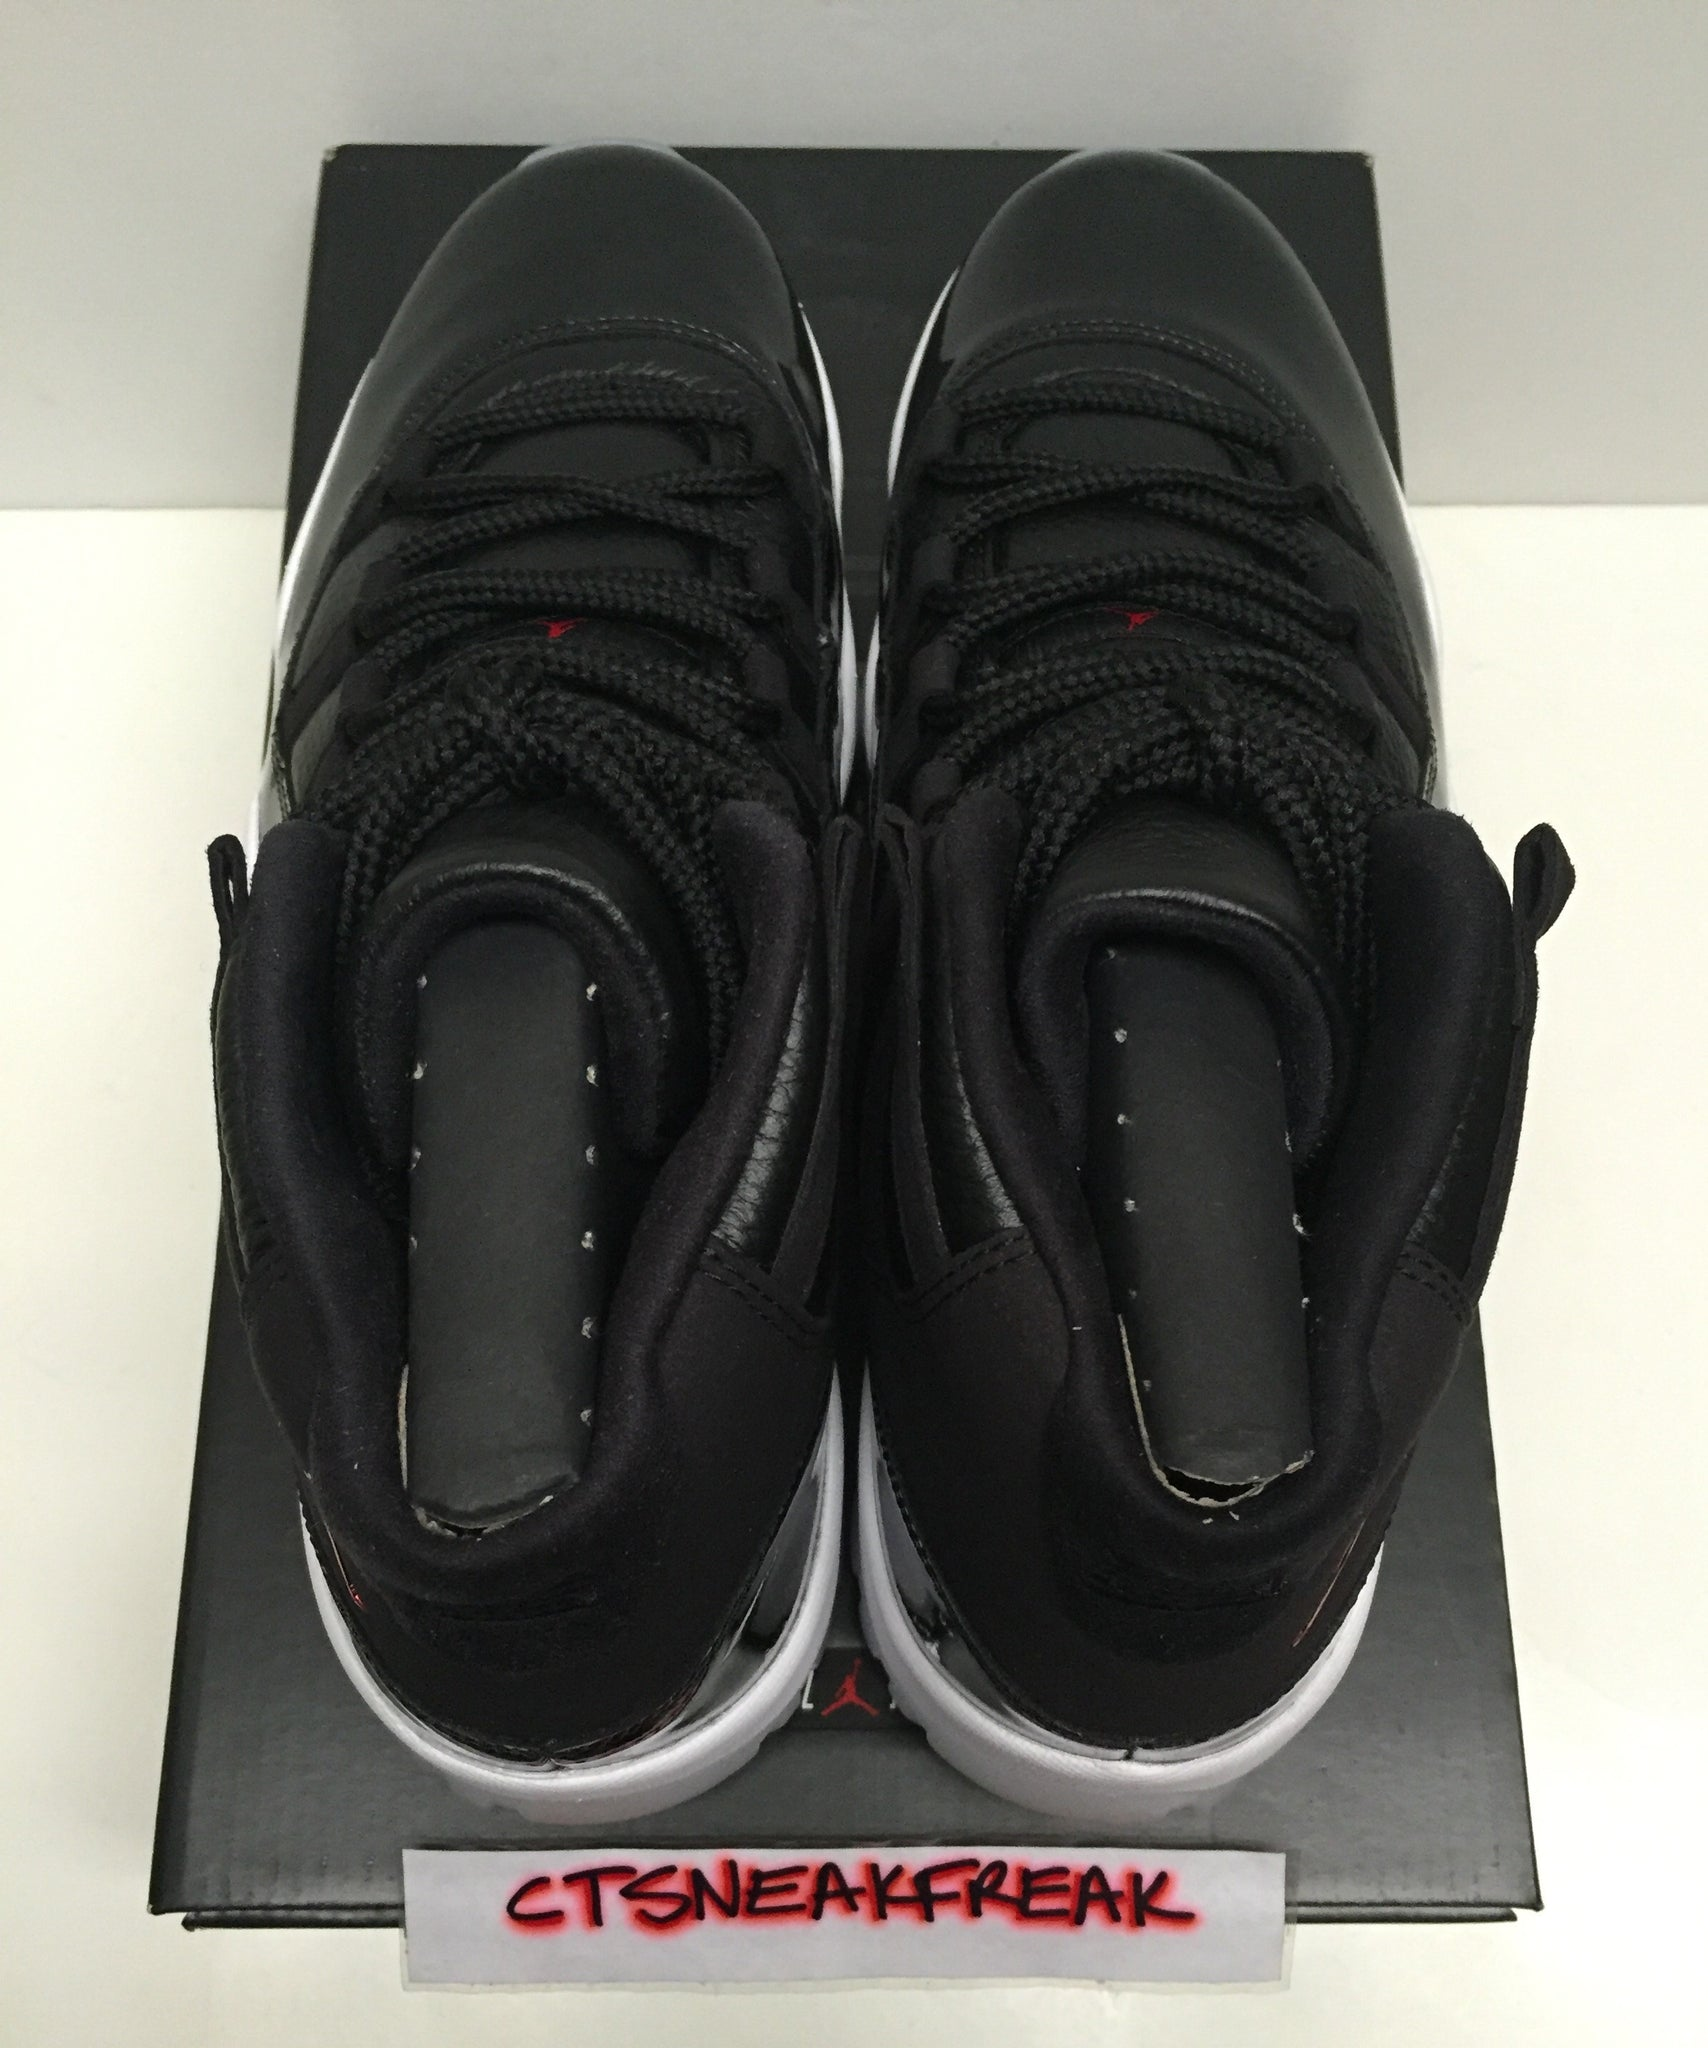 save off 91c80 036bf ... Load image into Gallery viewer, Nike Air Jordan 11 Retro 72-10 378037-  ...